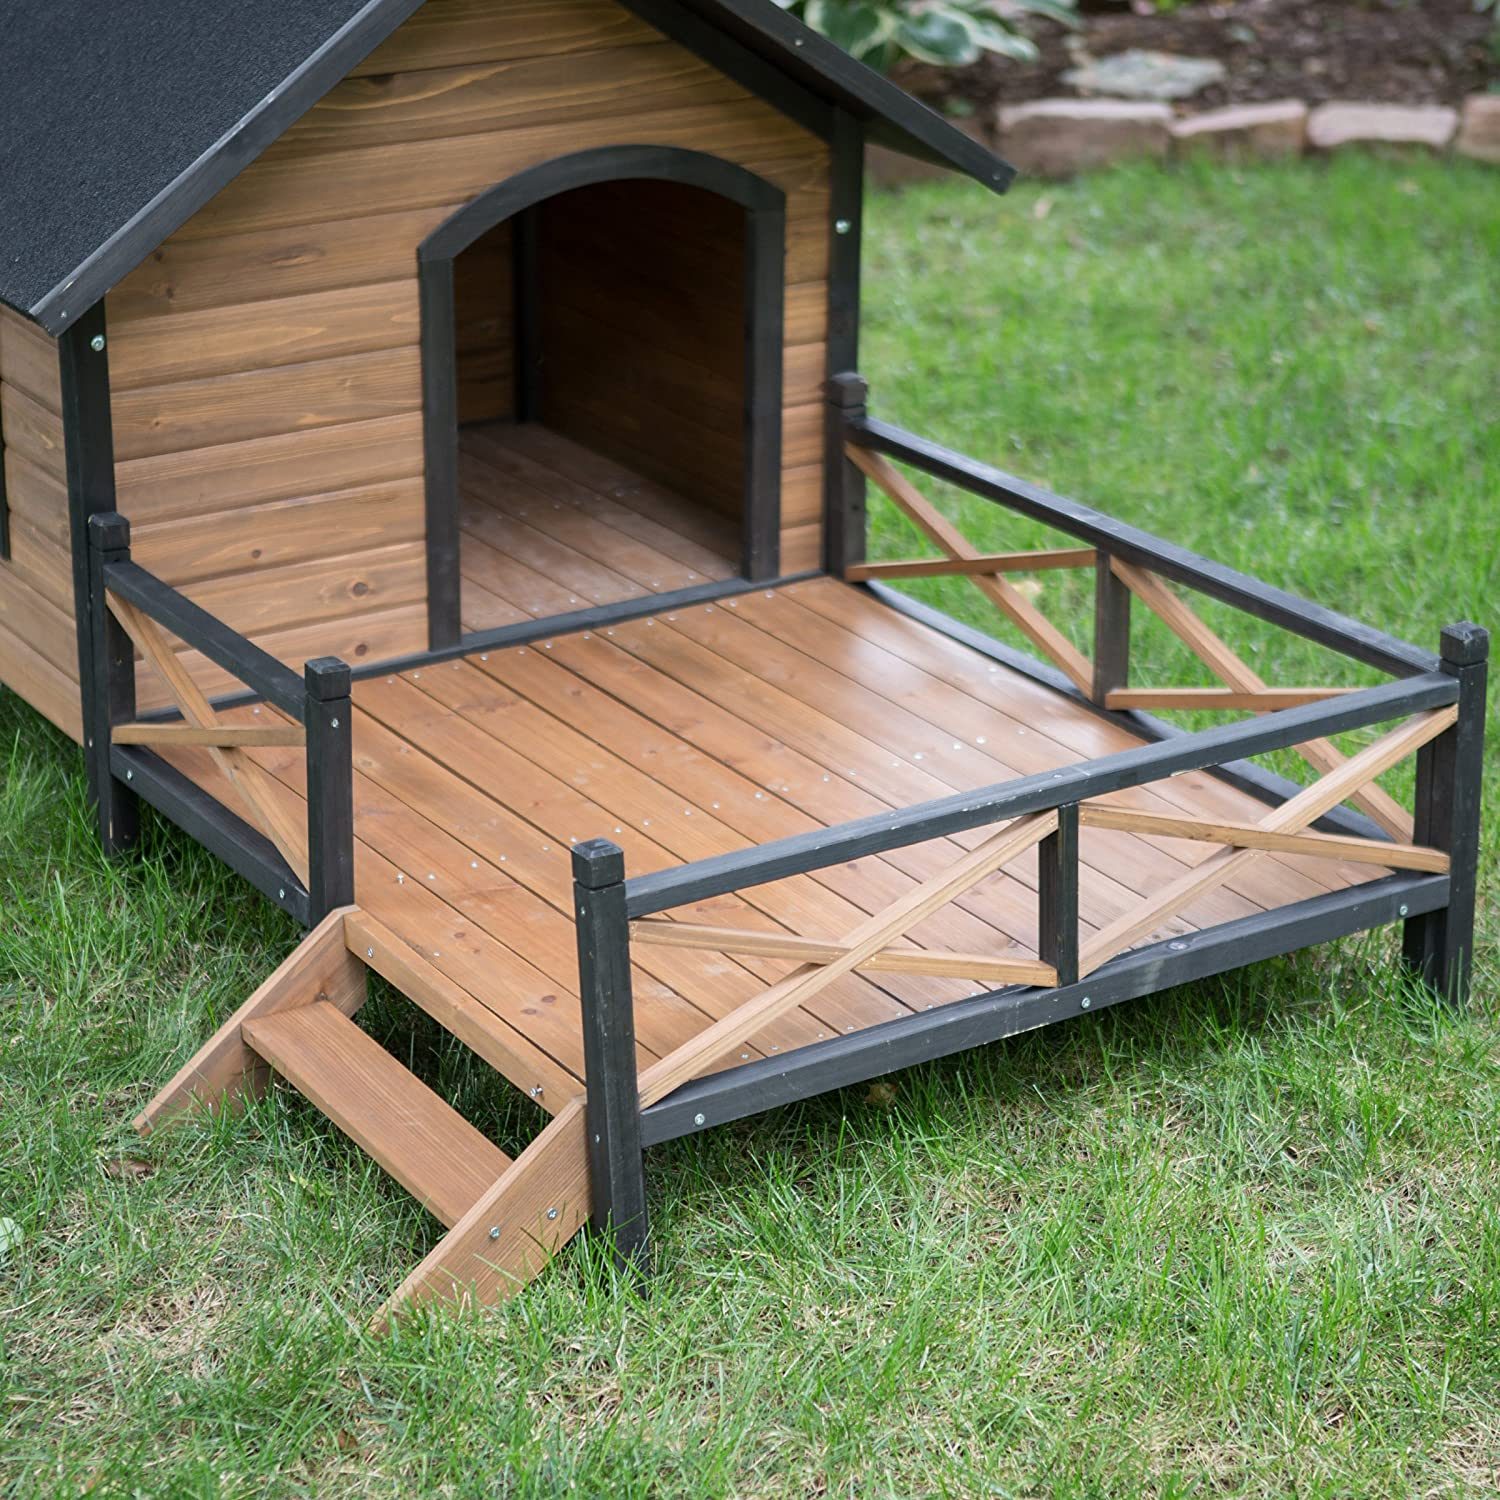 Amazon Dog House Lodge with Porch Deck Kennels Crates